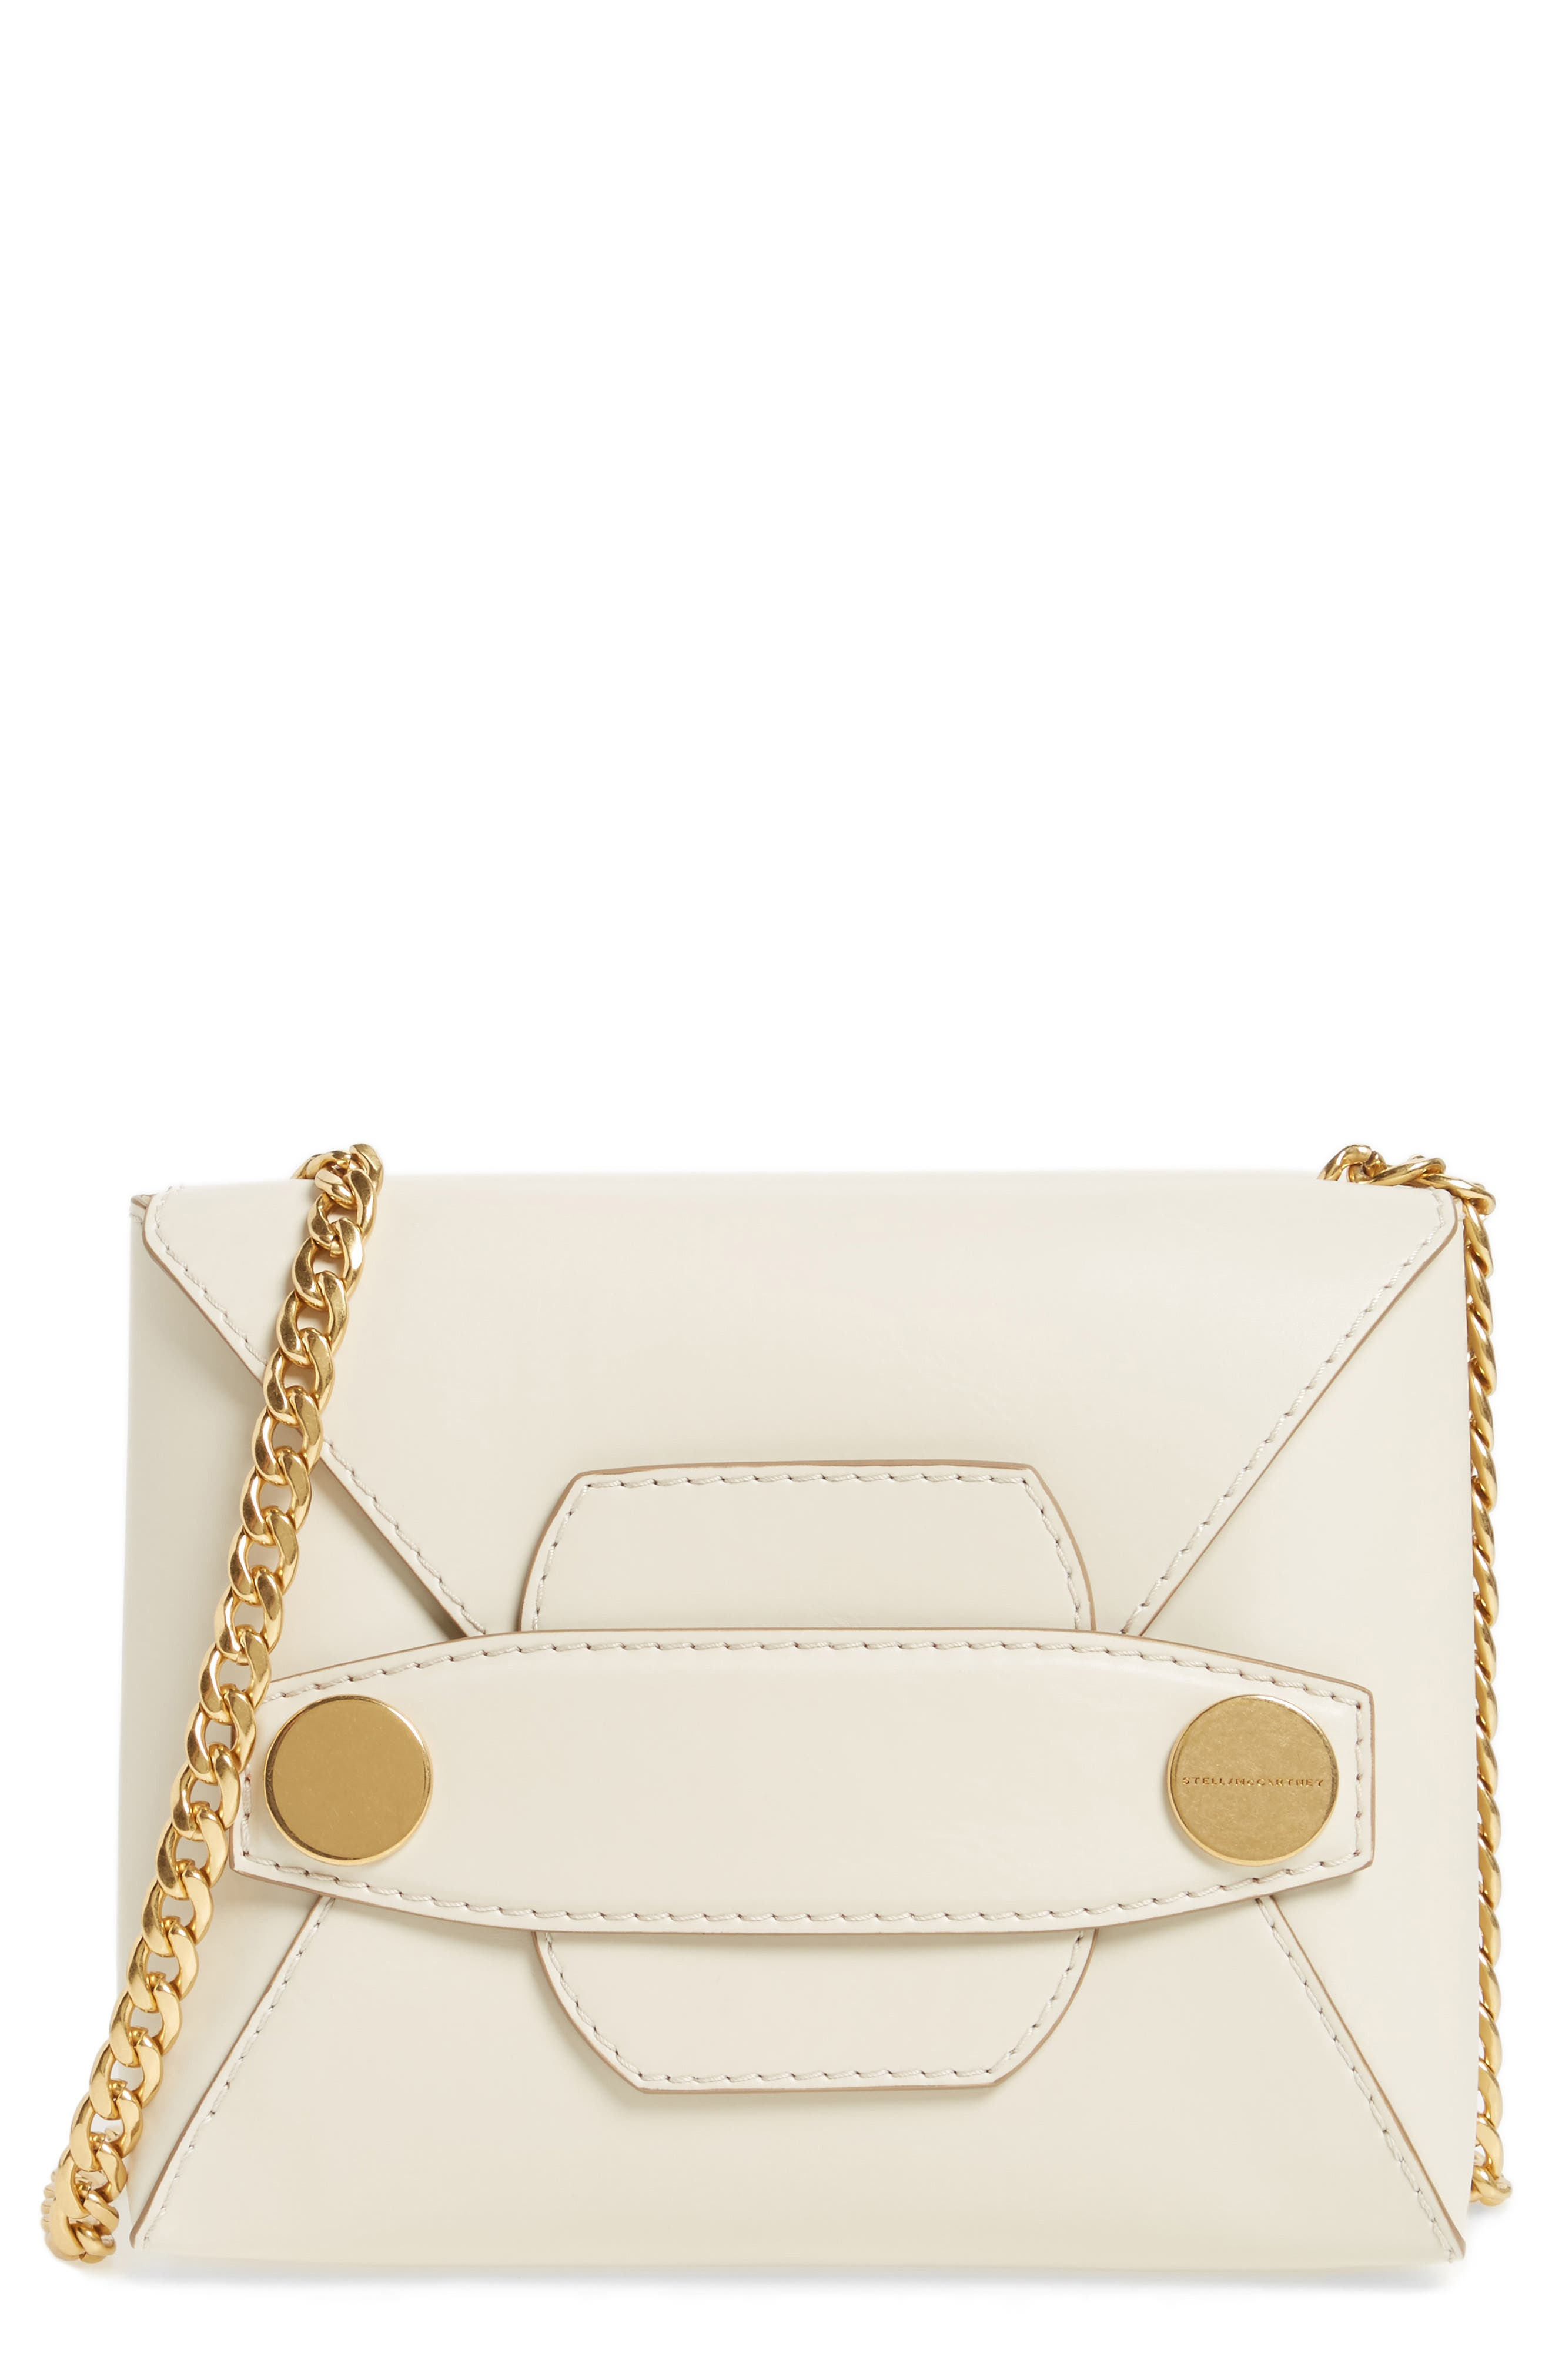 Alternate Image 1 Selected - Stella McCartney Small Faux Leather Crossbody Bag